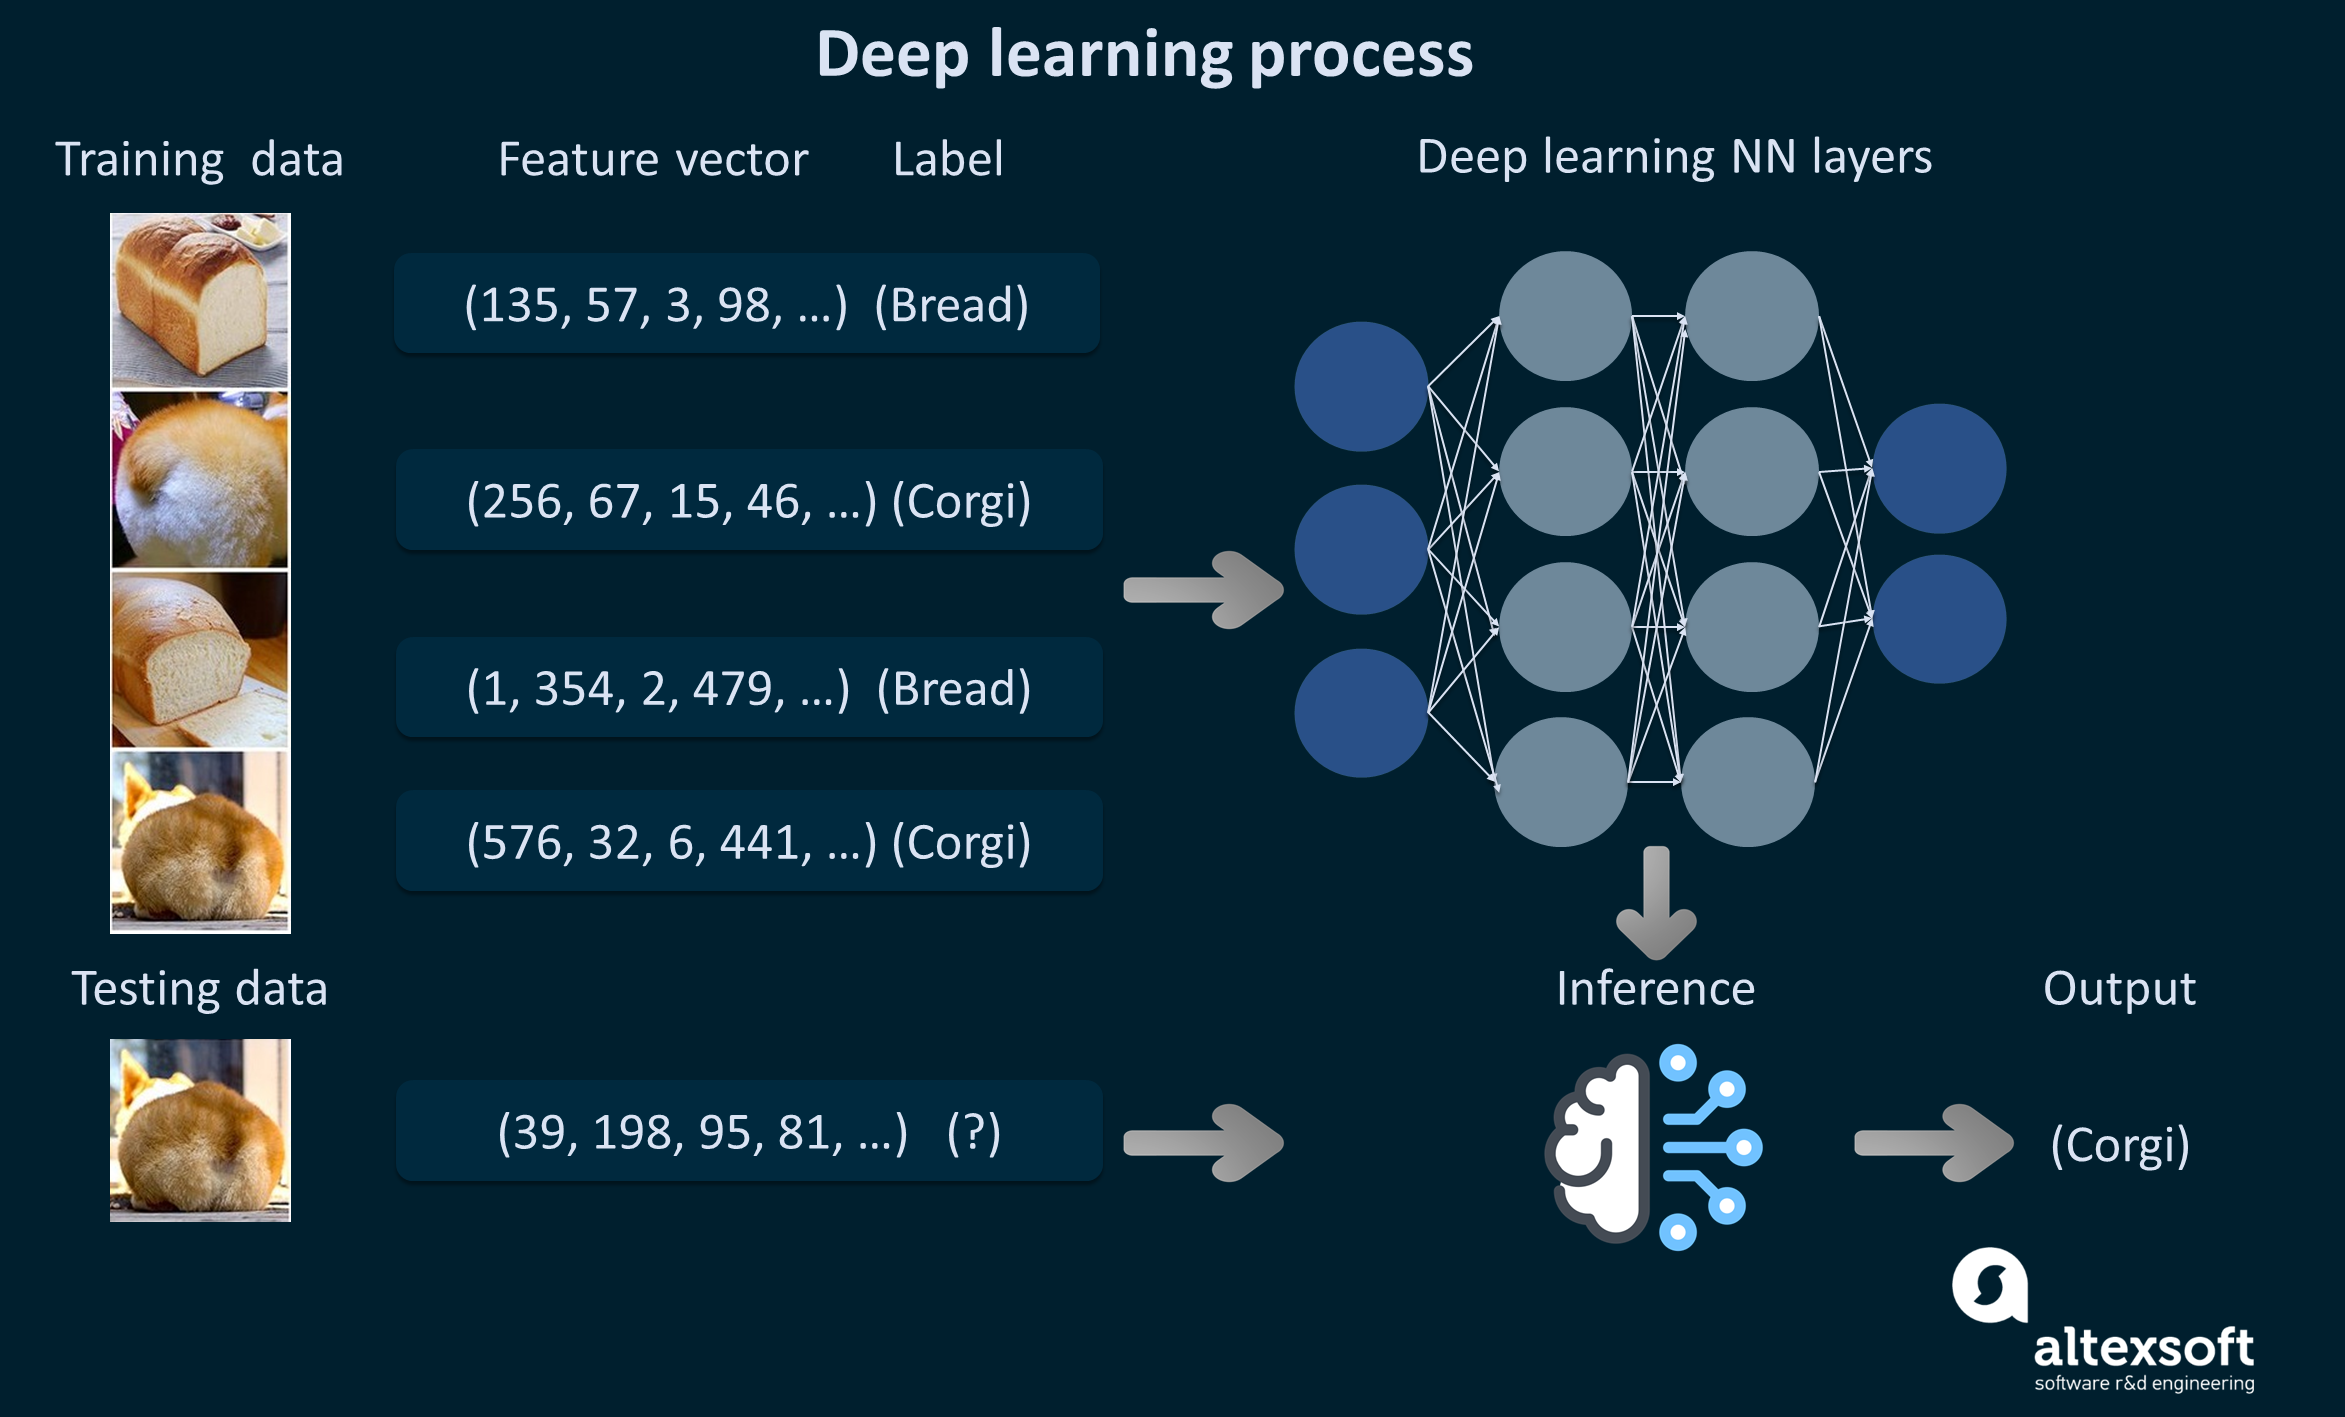 Deep learning process depiction